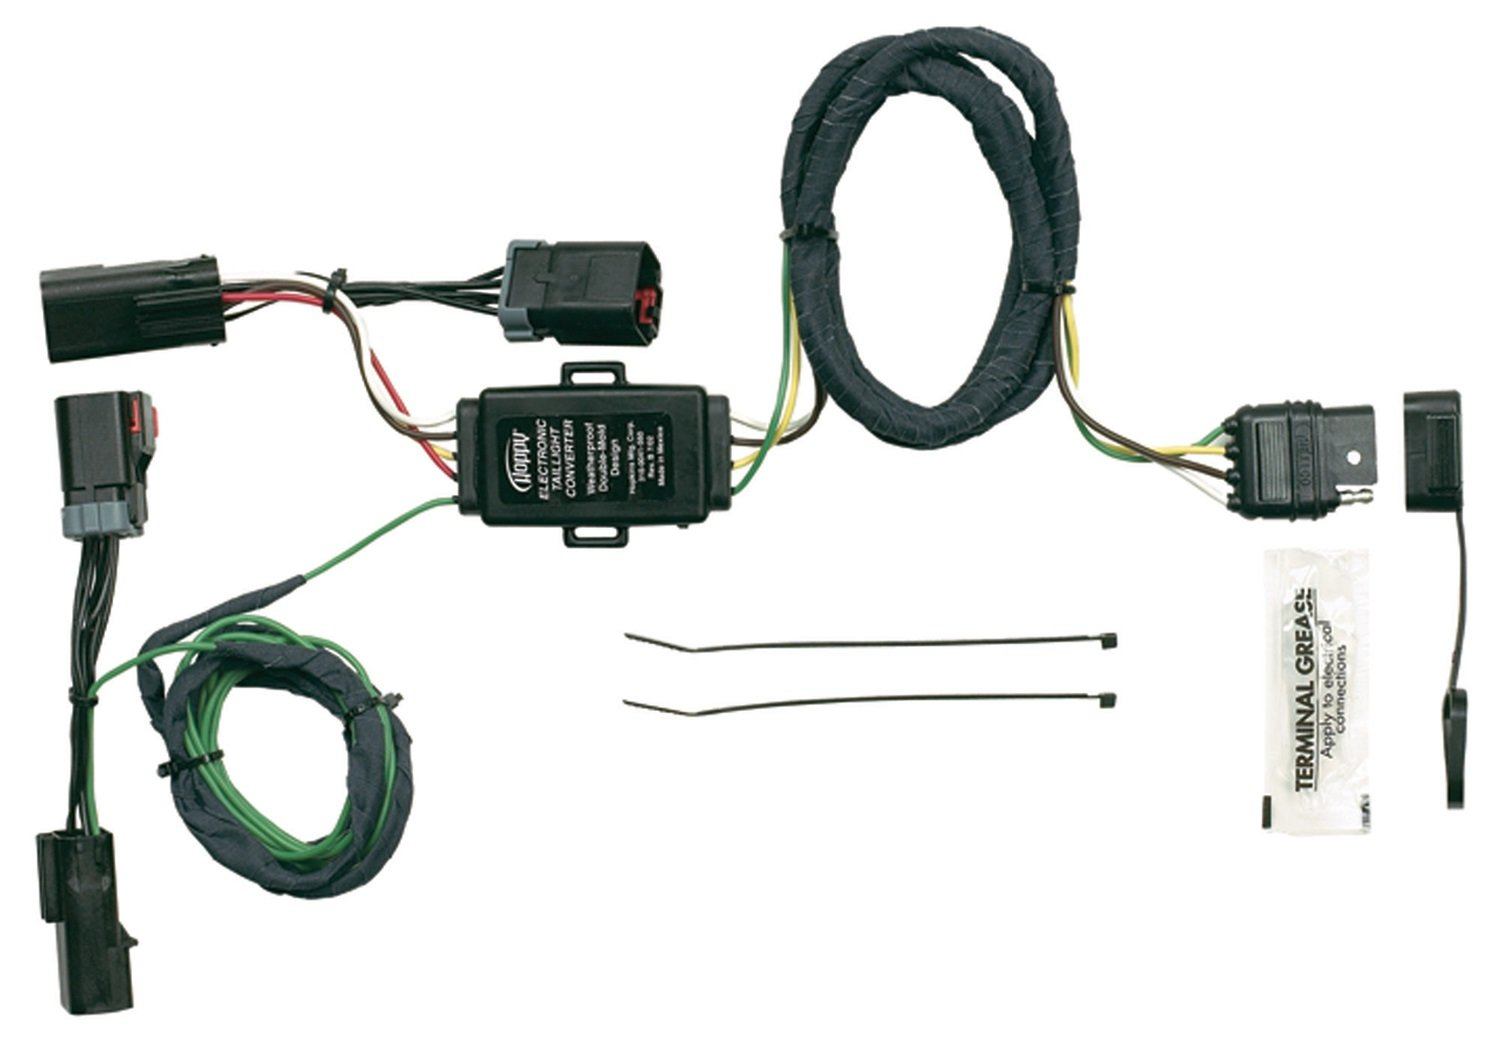 61Ia%2Btk0gAL._SL1500_ amazon com hopkins 42215 plug in simple vehicle wiring kit hopkins wire harness at cita.asia